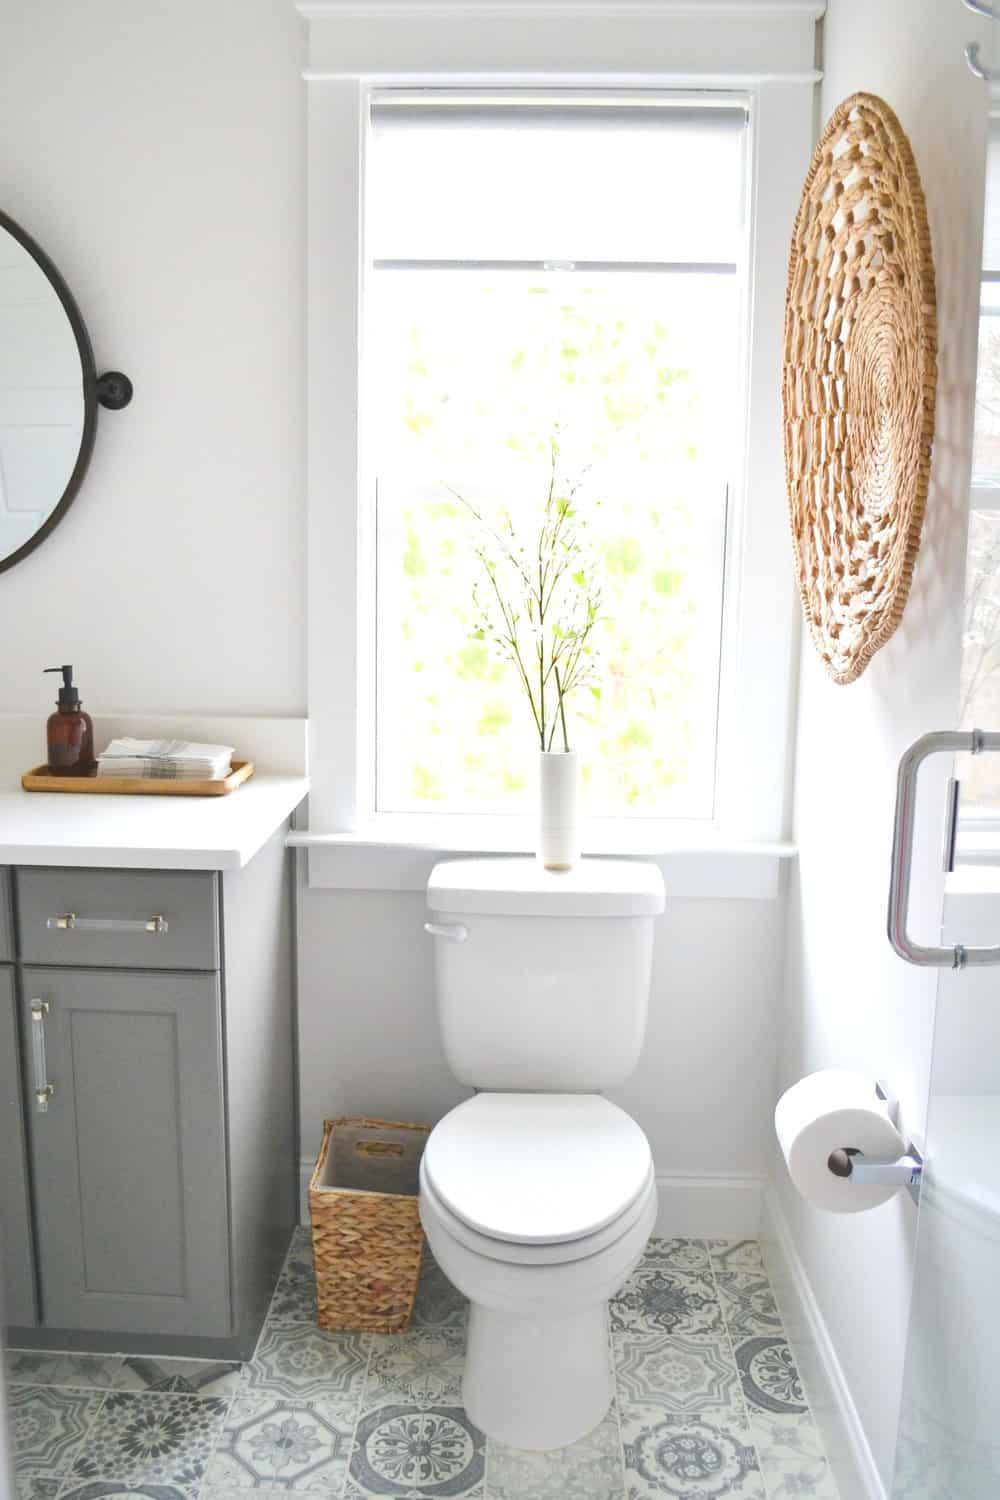 Mixed metals and patterned tile toilet